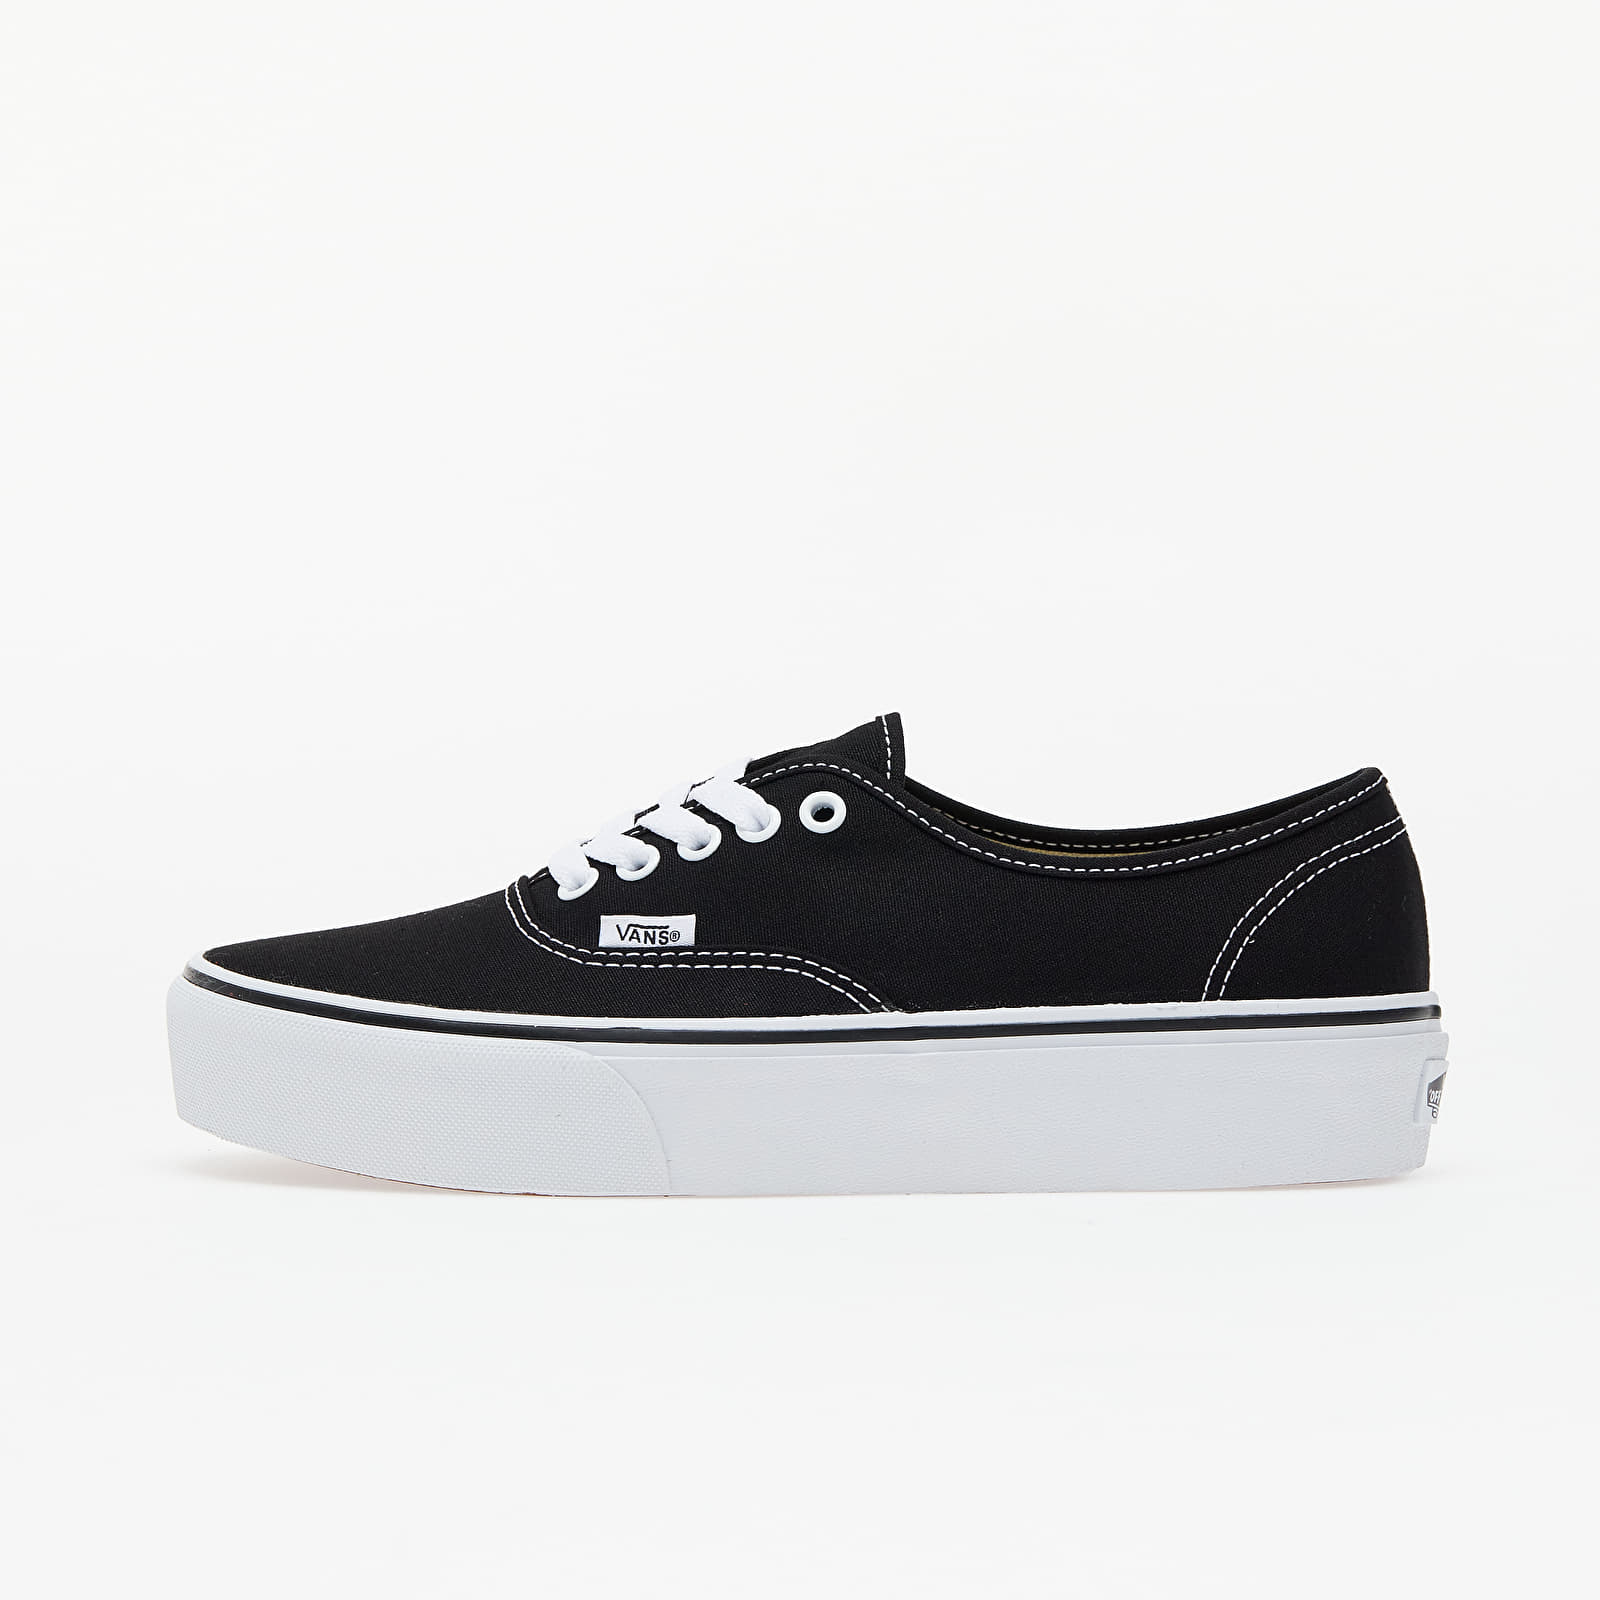 Chaussures et baskets femme Vans Authentic Platform 2.0 Black